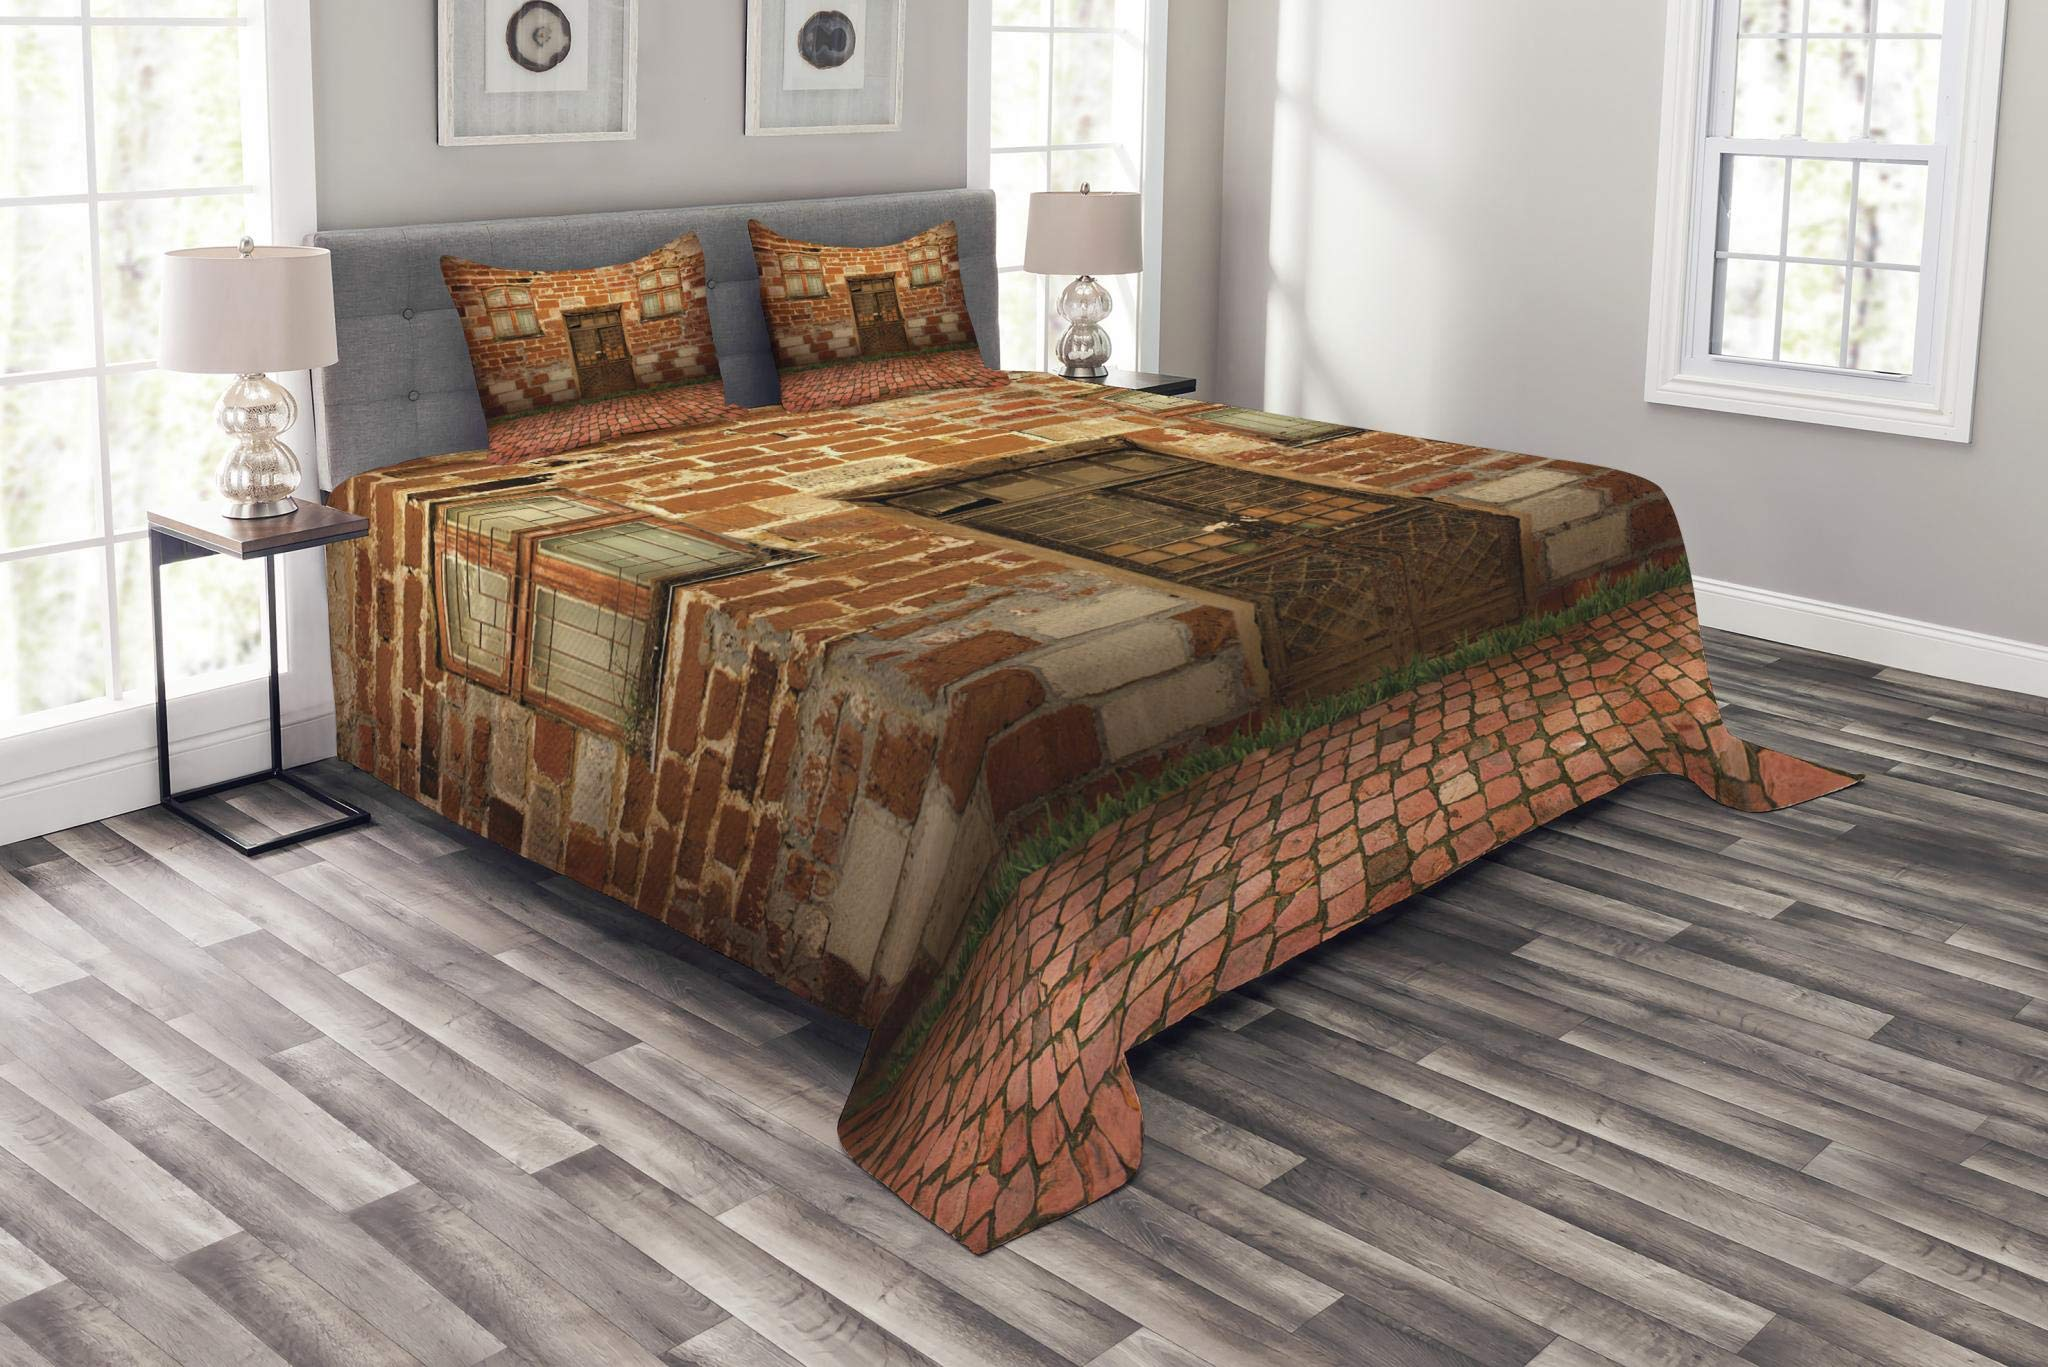 Lunarable Rustic Bedspread Set King Size, Antique Exterior with Old Door and Windows Frontage Aged Building Print, Decorative Quilted 3 Piece Coverlet Set with 2 Pillow Shams, Cinnamon Coral Brown